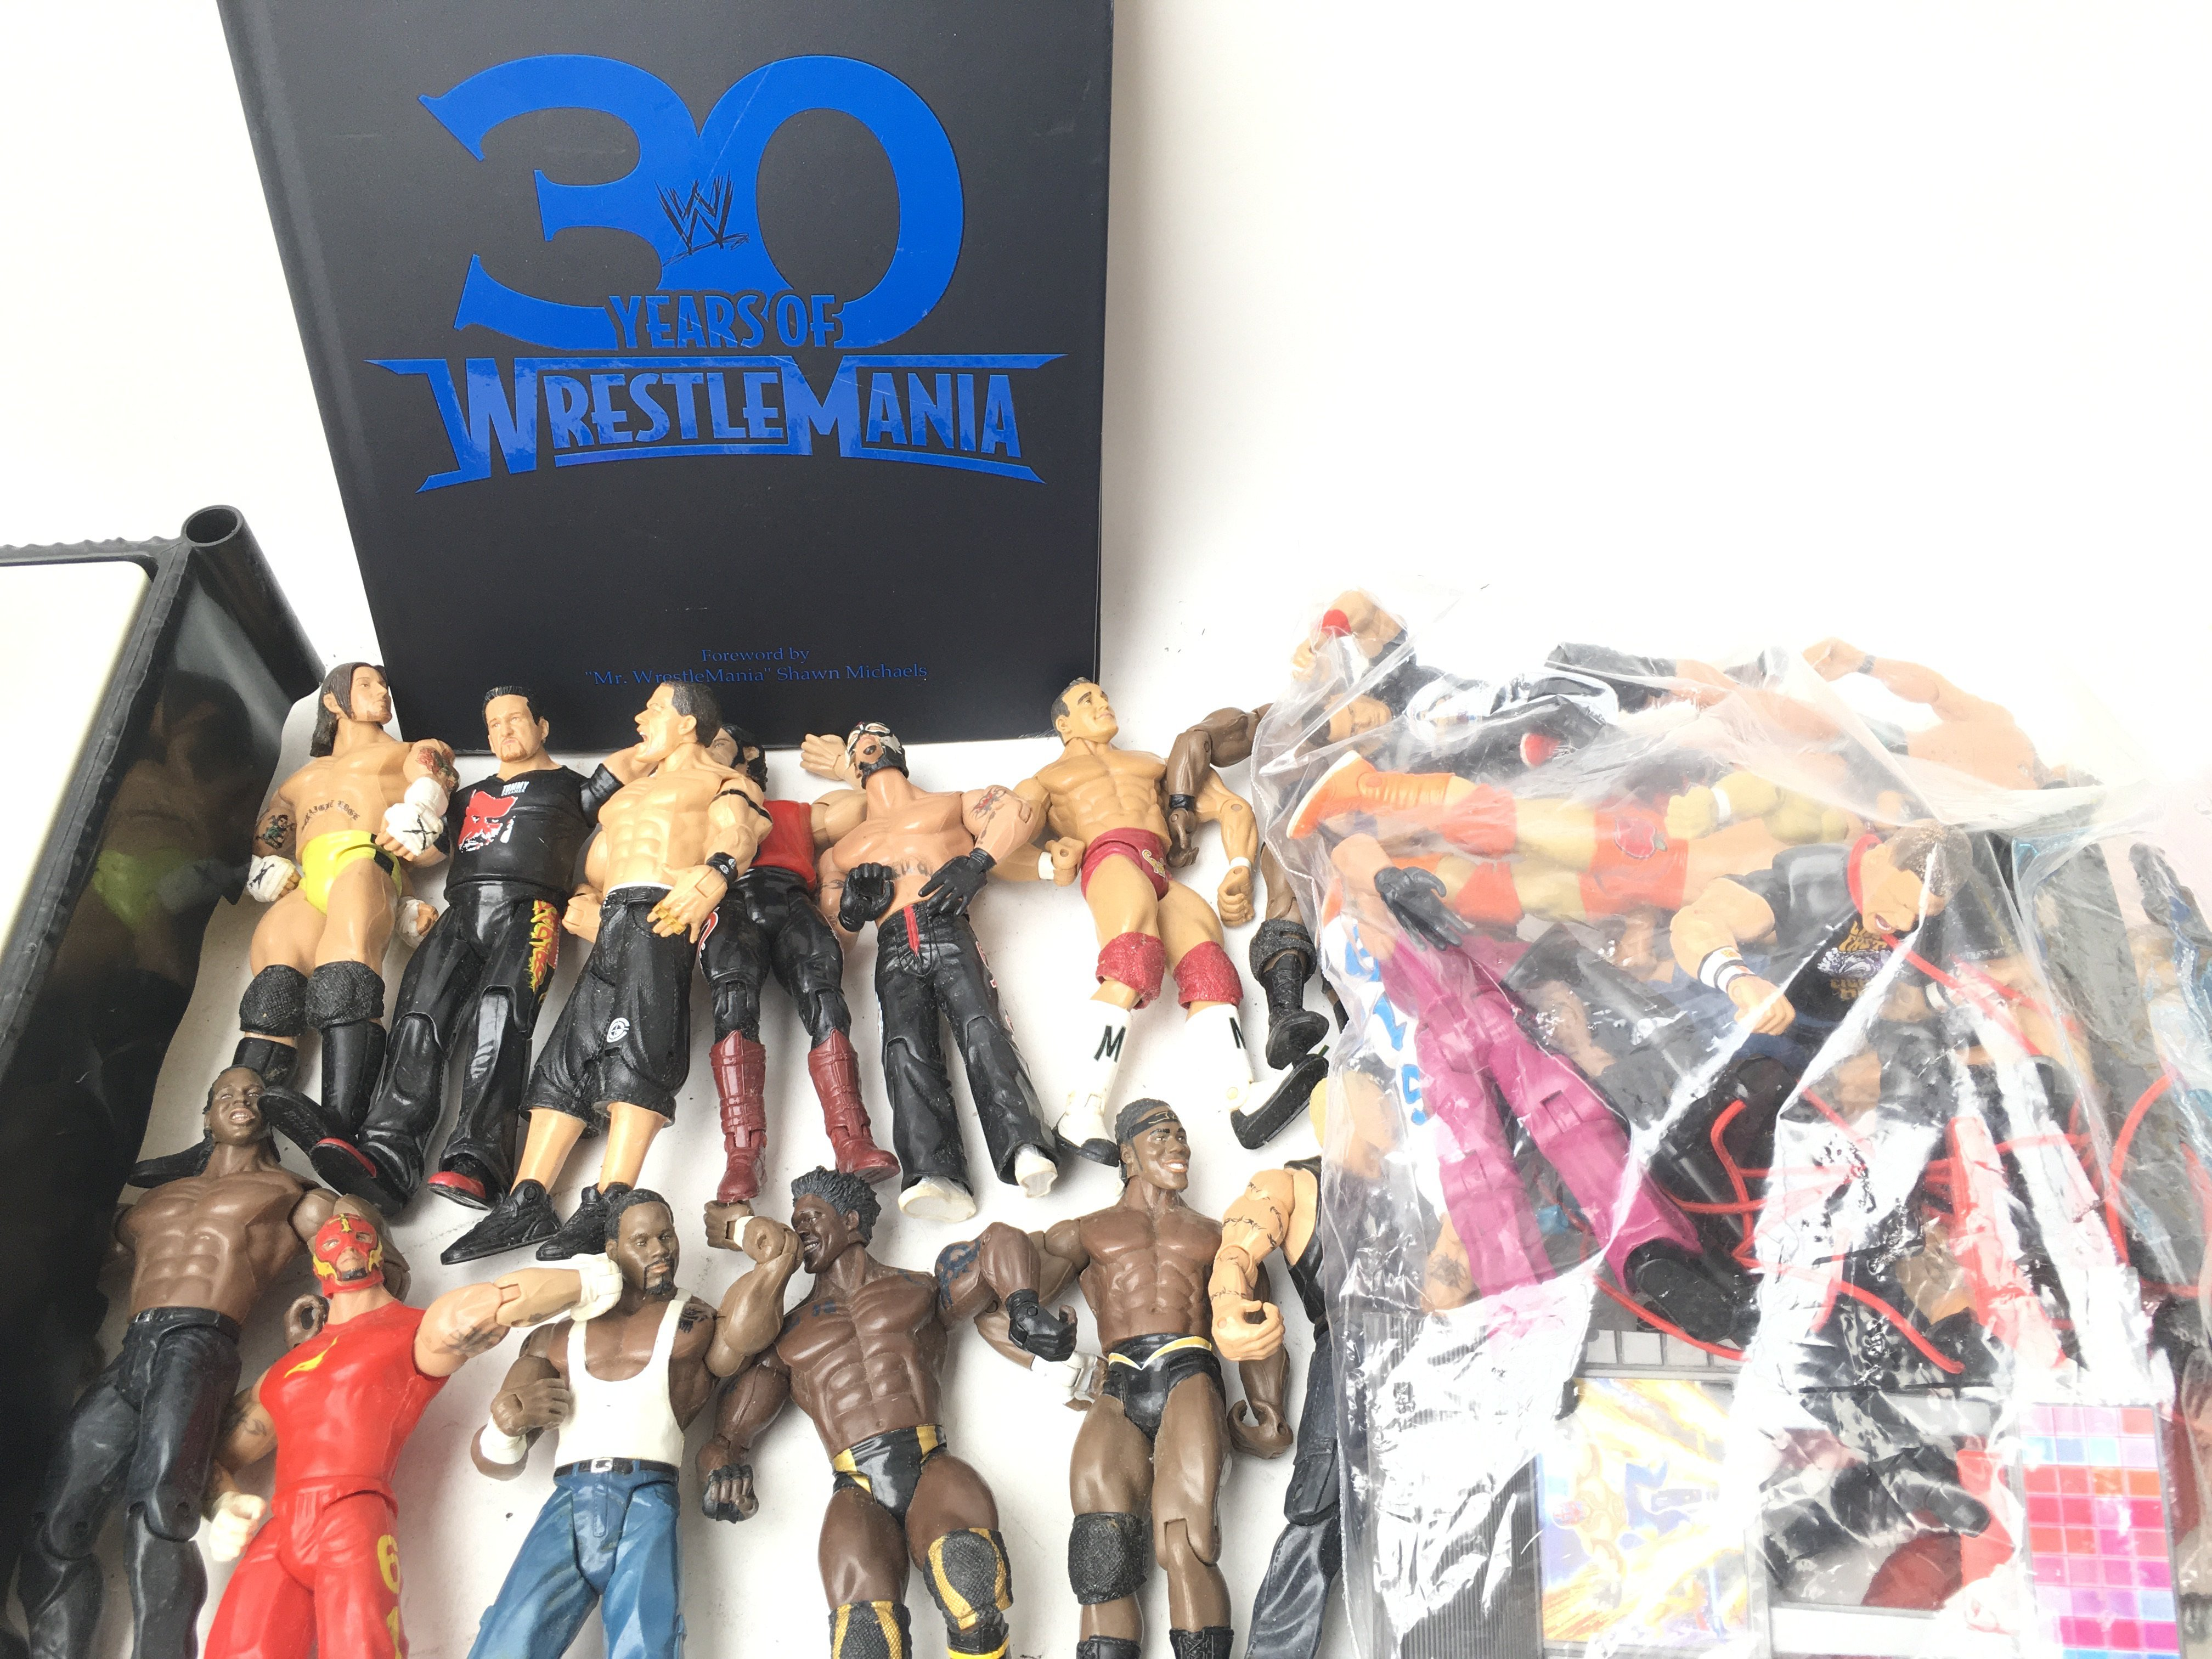 A Collection Of WWE Figures, Ring and Book. - Image 2 of 2